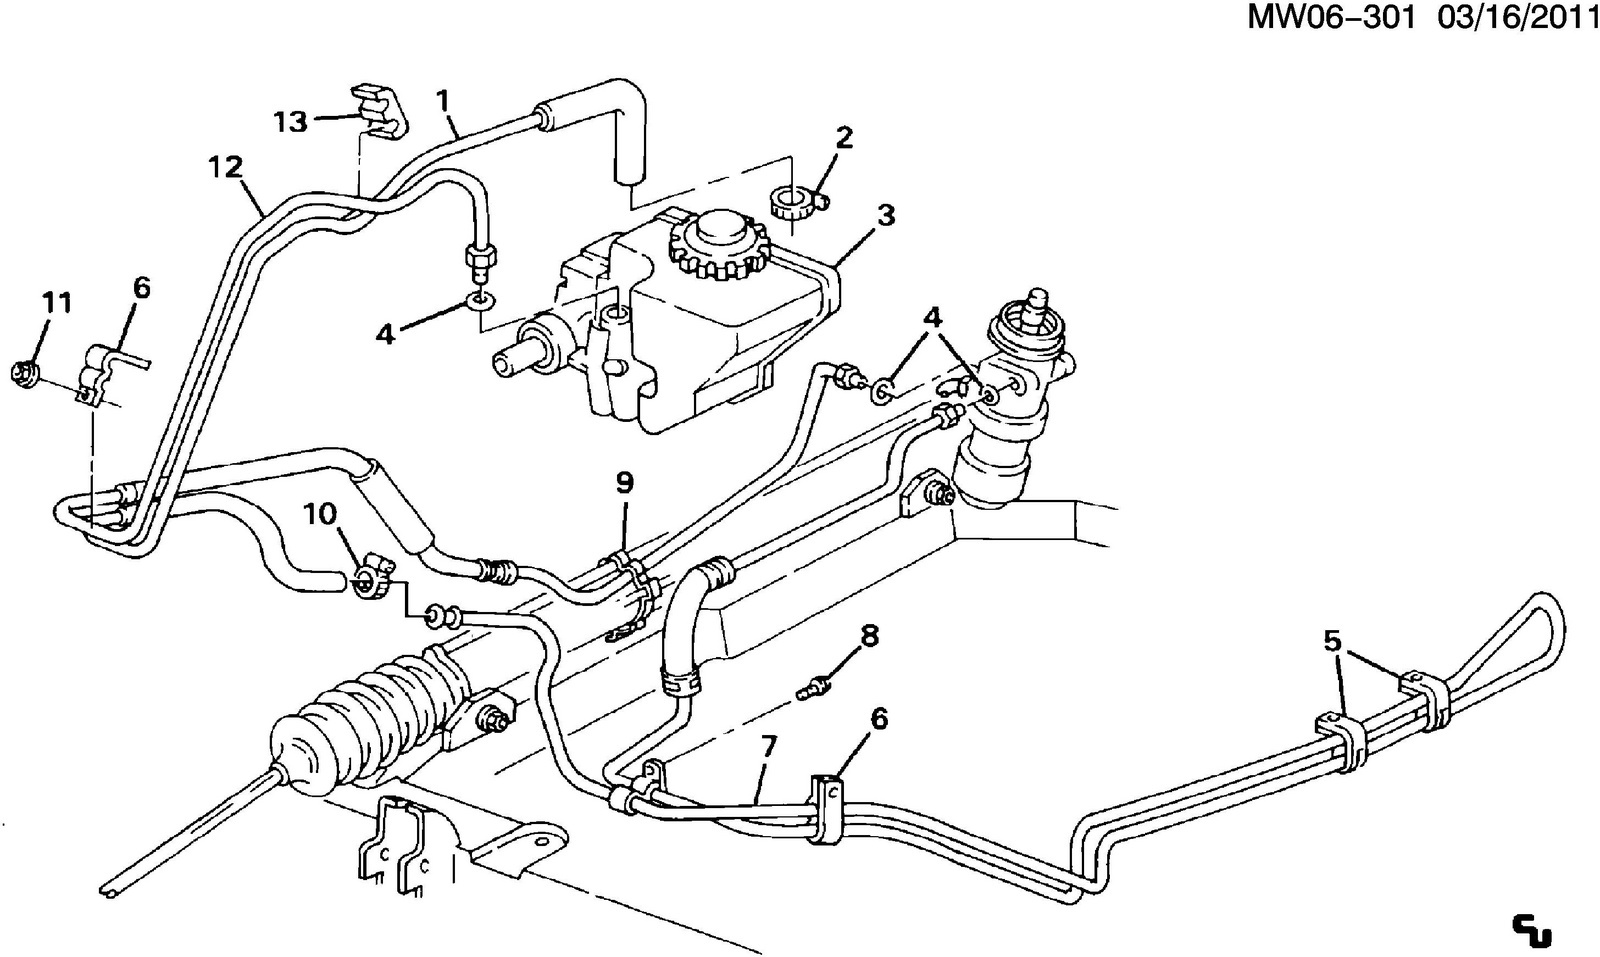 2000 Nissan Maxima Wiring Harness Diagram Will Be A Thing 2014 02 Accord Power Steering Hose Free Engine Alternator Eccs